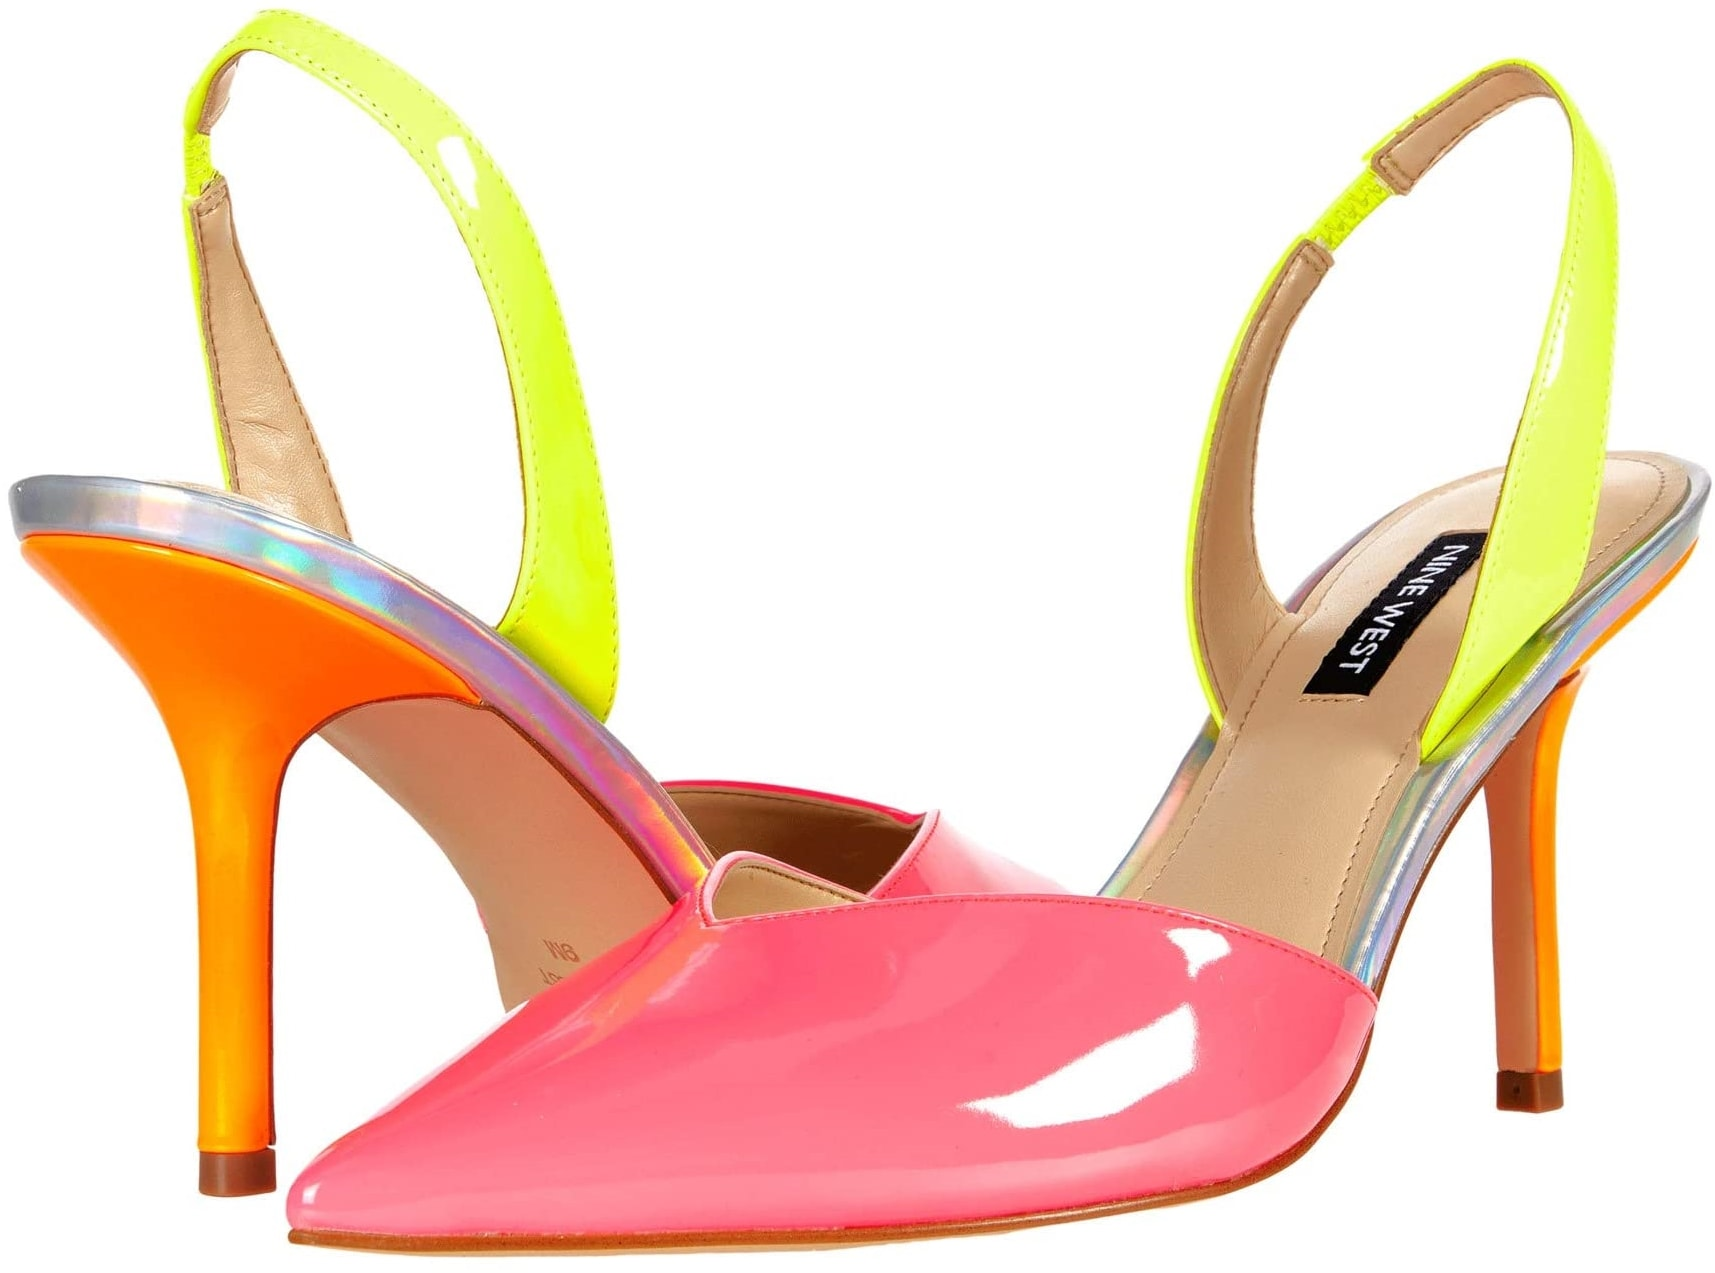 Your outfit will get a pop of color with Nine West's hot pink and yellow patent Hello pointed toe stiletto heels